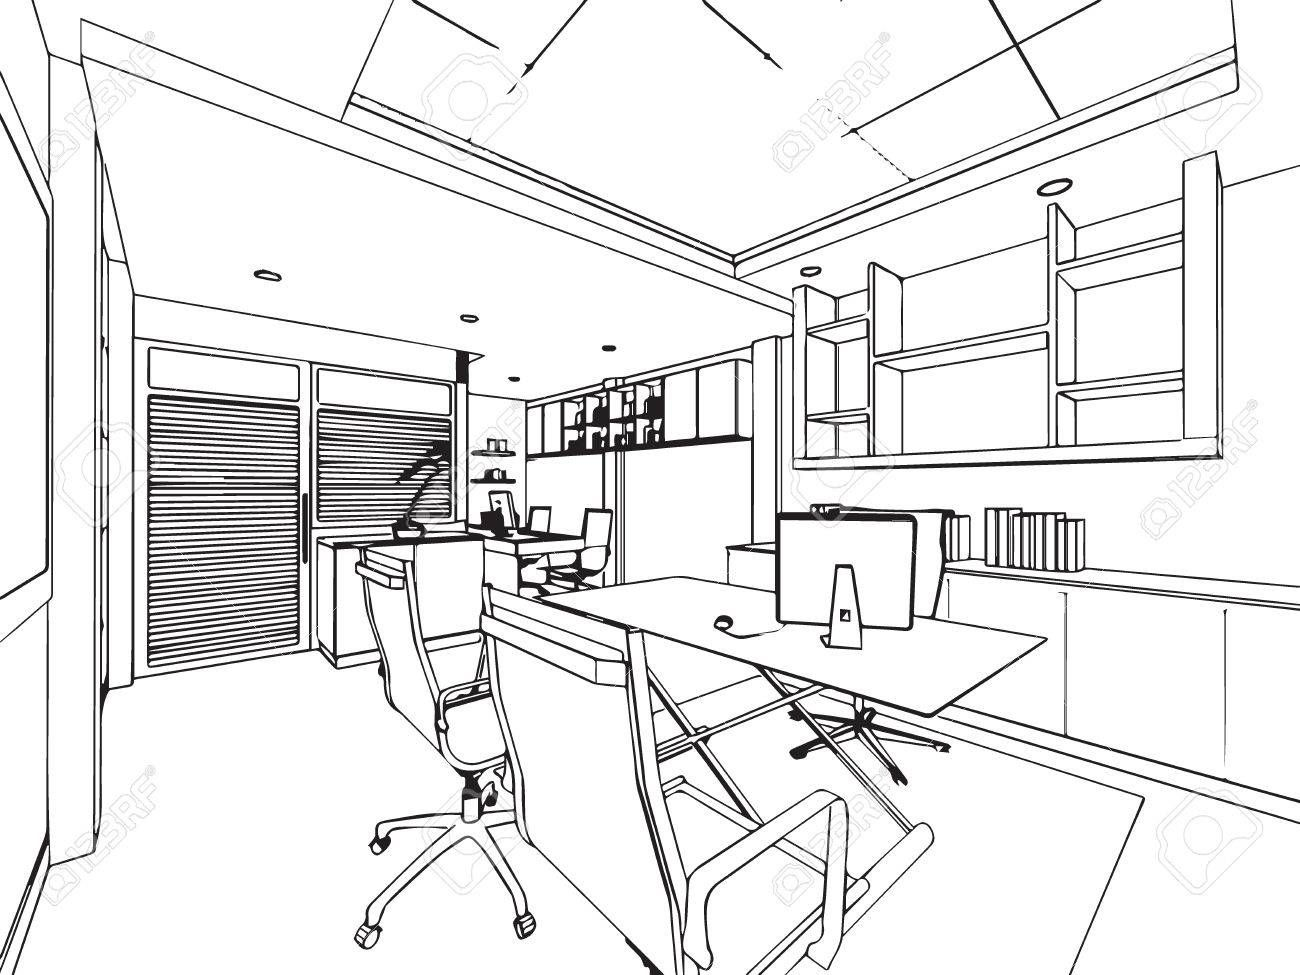 interior outline sketch drawing perspective of a space ...